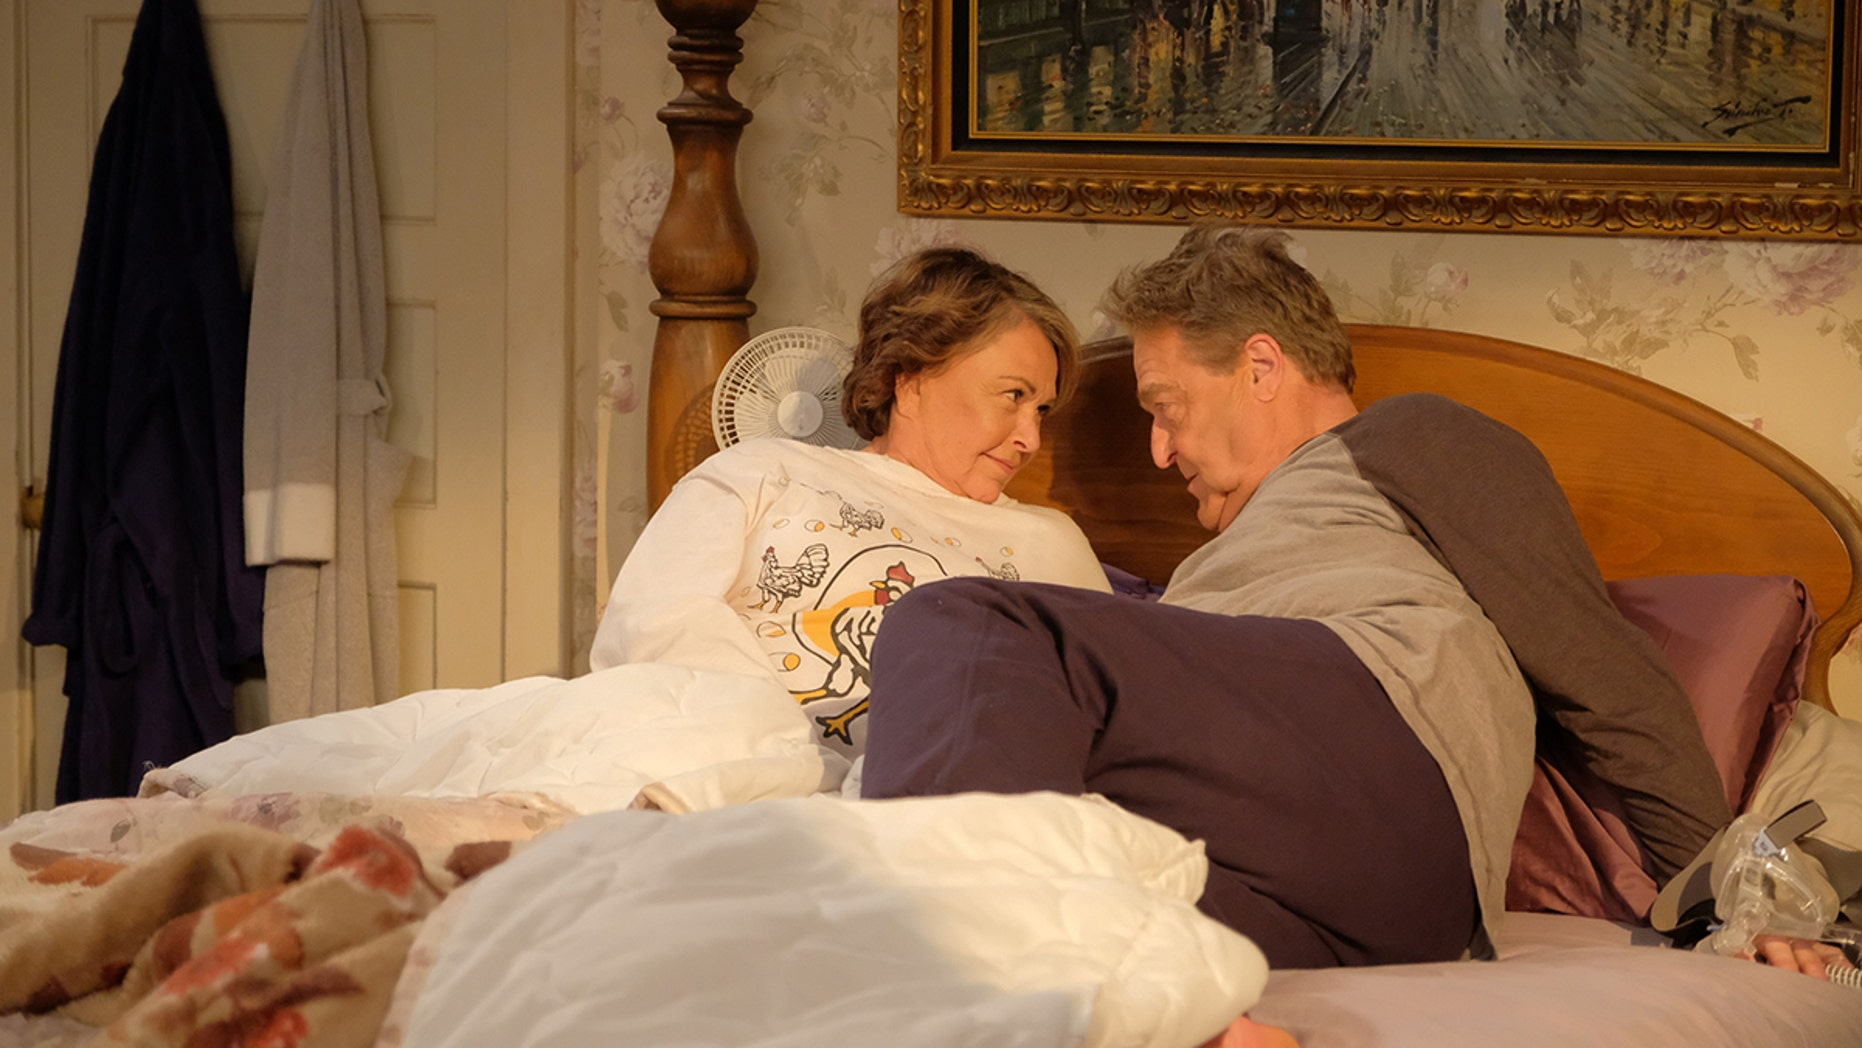 """ROSEANNE - """"Twenty Years to Life"""" - Roseanne and Dan adjust to living under the same roof with Darlene and her two children, Harris and Mark, when Darlene loses her job. Meanwhile, Becky announces she is going to be a surrogate to make extra money; and Roseanne and Jackie are at odds with one another, on the season premiere and first episode of the revival of """"Roseanne,"""" TUESDAY, MARCH 27 (8:00-8:30 p.m. EDT), on The ABC Television Network. (ABC/Adam Rose)ROSEANNE BARR, JOHN GOODMAN"""